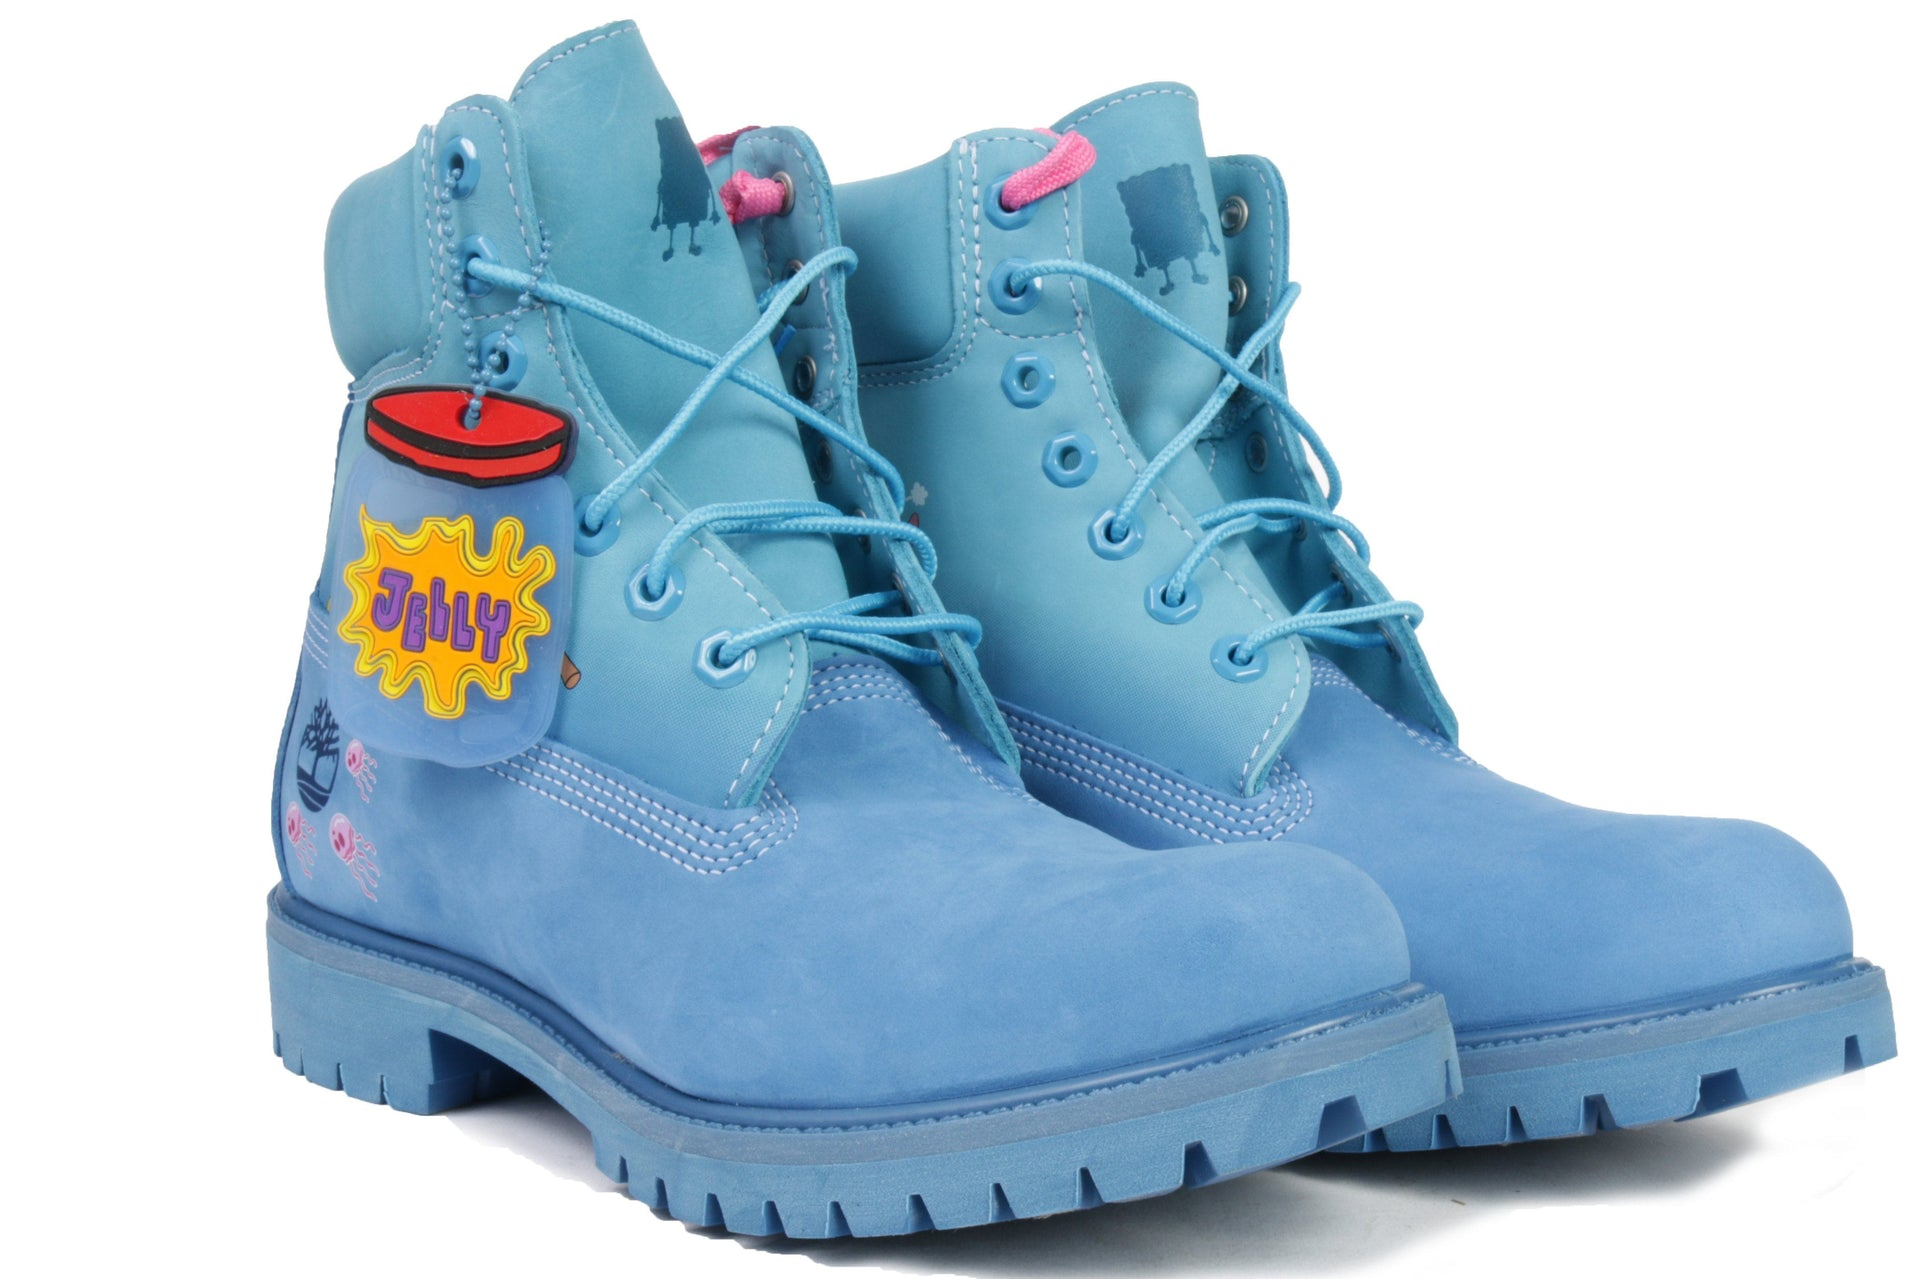 SPONGEBOB PREMIUM 6 IN BOOT - 0A22T4-J45 MENS FOOTWEAR TIMBERLAND